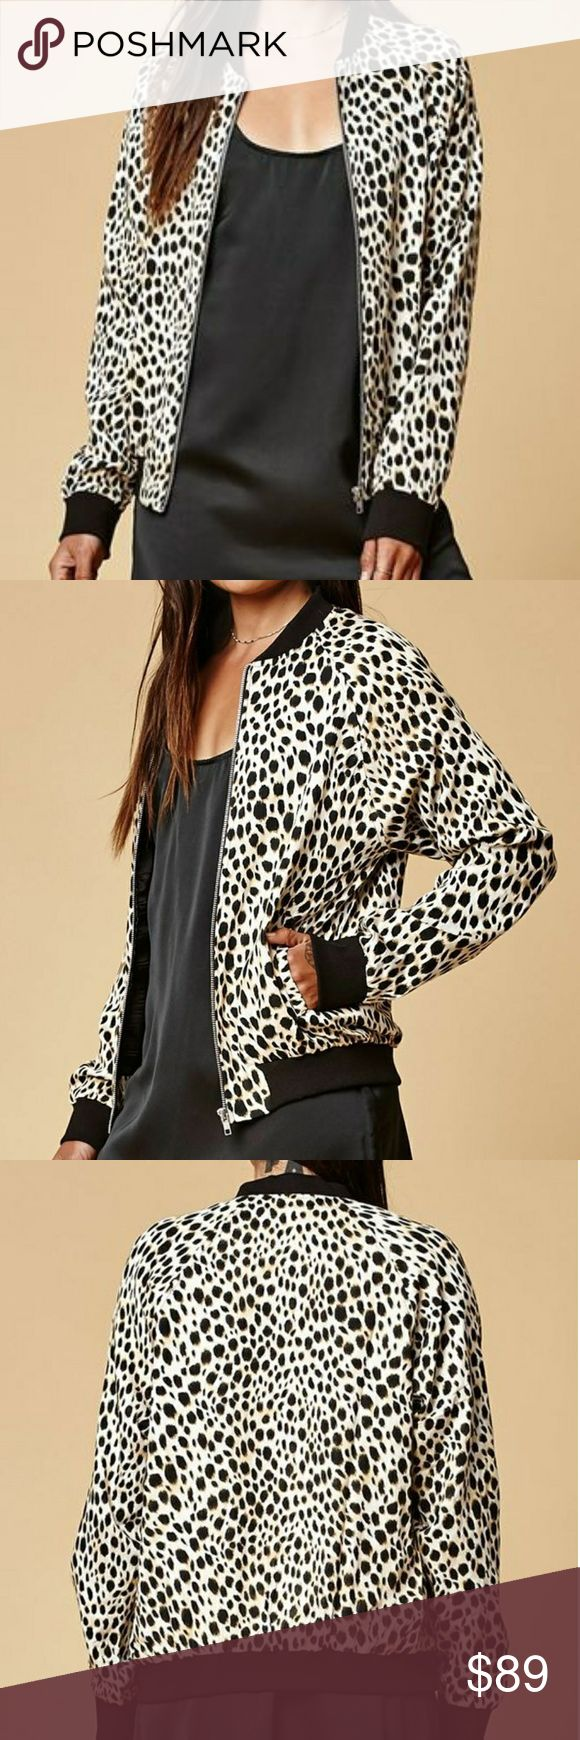 Motel Cheetah Print Bomber Jacket The super chic bomber jacket has a collarless neckline, long sleeves and elastic hem. You can style this jacket with almost any outfit 😉  Content: 100% Rayon  Condition: NEW | NWT   Don't like the price? Send me an offer! Offers welcomed through offer button only please ☺  NO TRADES! NO 🅿🅿! NO ♏eRc! Motel Rocks Jackets & Coats